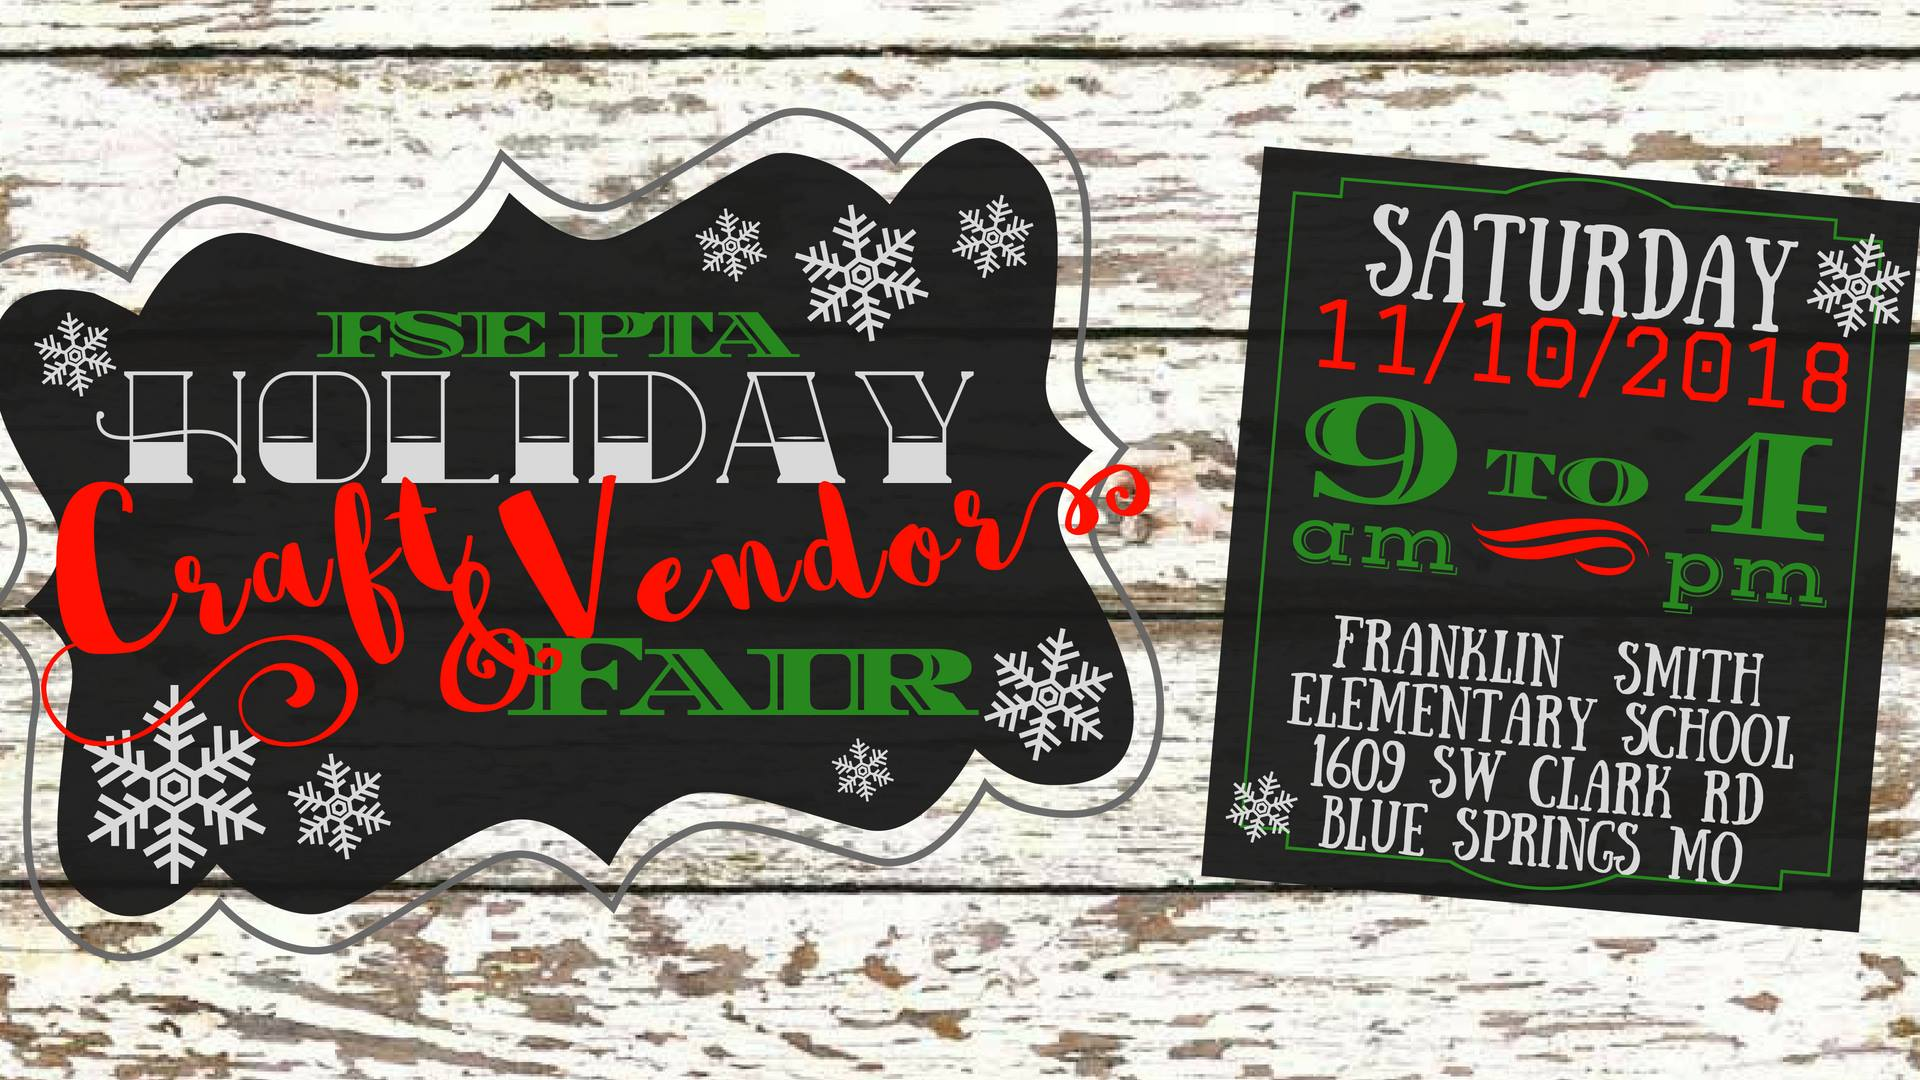 Holiday Craft & Vendor Fair - Saturday, Nov. 11 9-4pmFranklin Smith Elementary School 1609 SW Clark Rd., Blue Springs, MO 64015HeideHo will be selling & signing books amidst a sea of amazing holiday gifts and booths! Come see us!